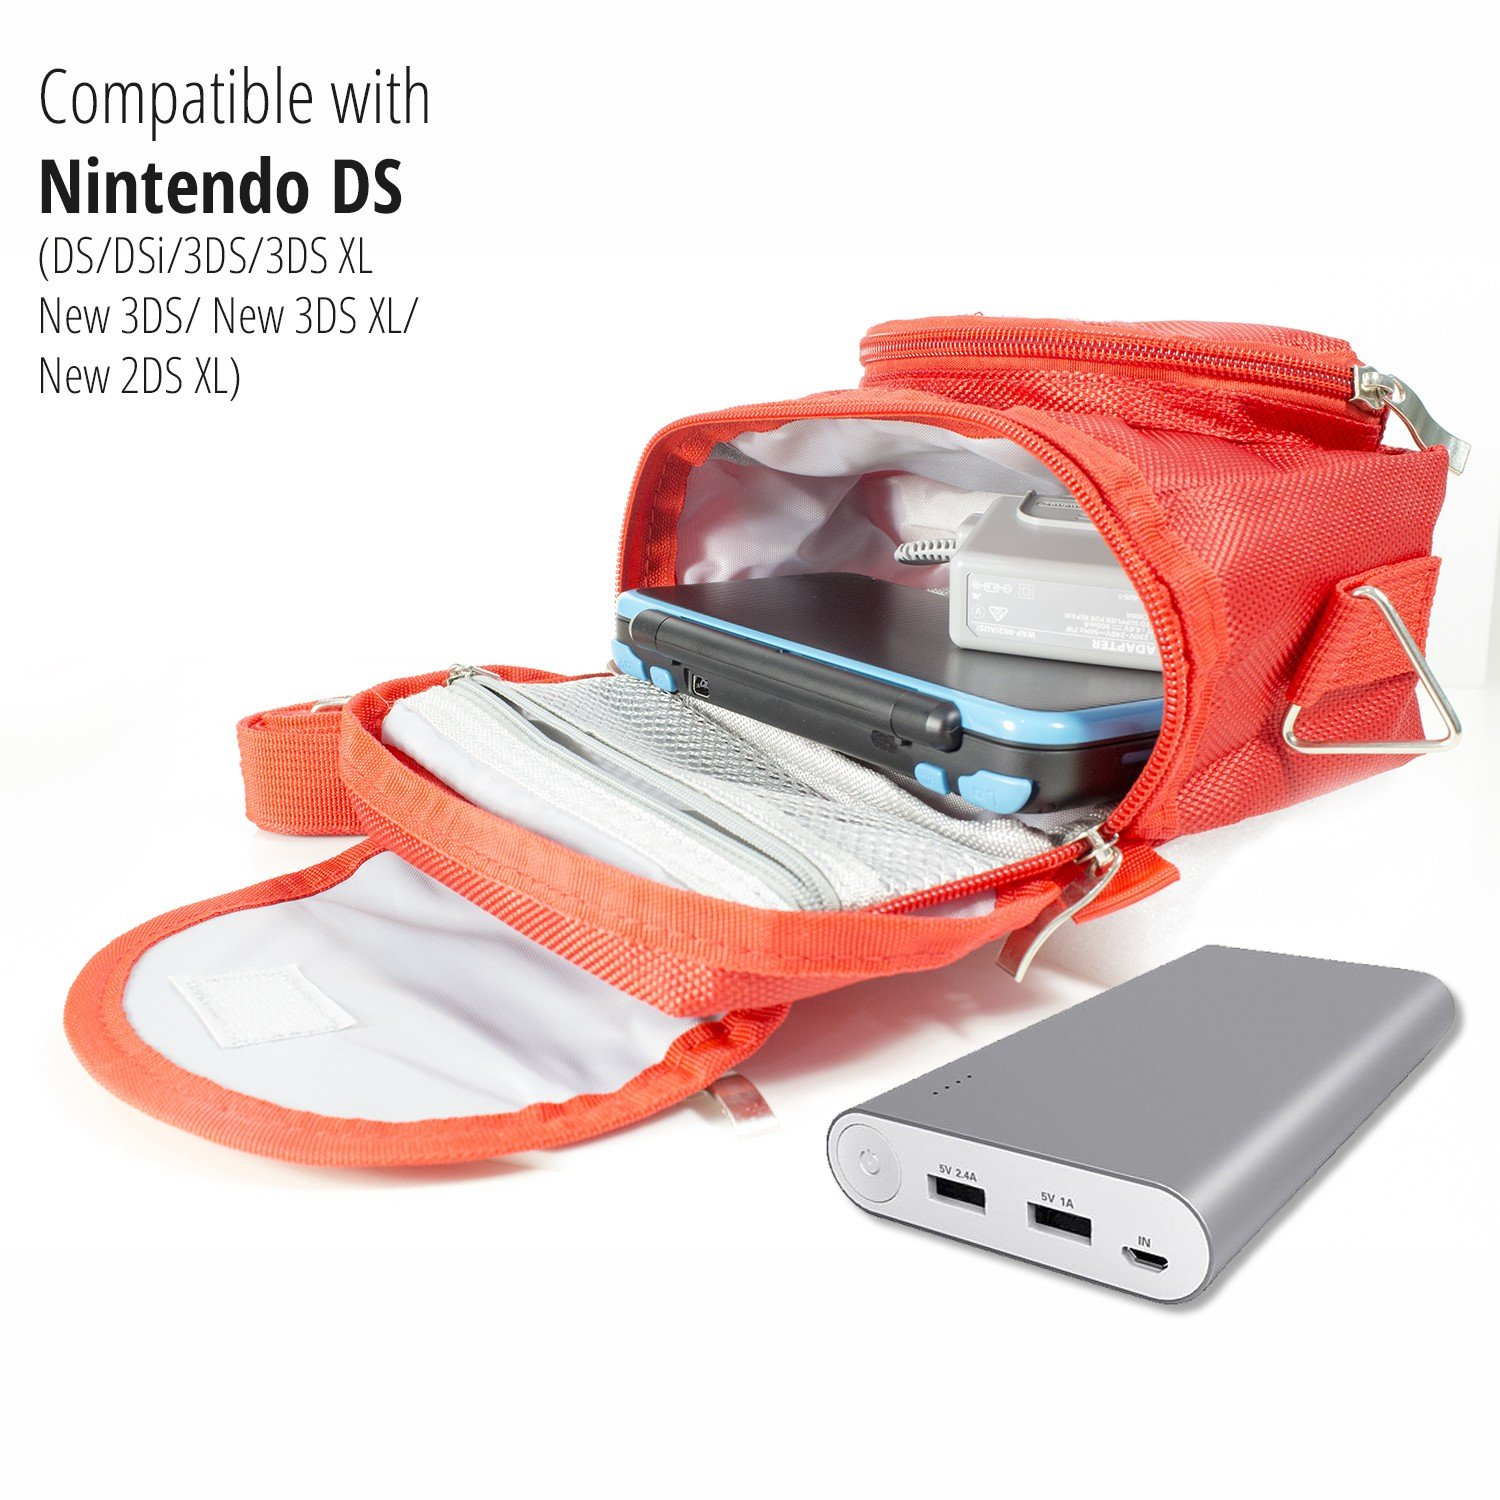 Orzly Travel Bag for Nintendo DS Consoles (New 2DS XL / 3DS / 3DS XL / New 3DS / New 3DS XL / Original DS / DS Lite / DSi / etc.) - Includes Belt Loop, Carry Handle, Shoulder Strap - RED